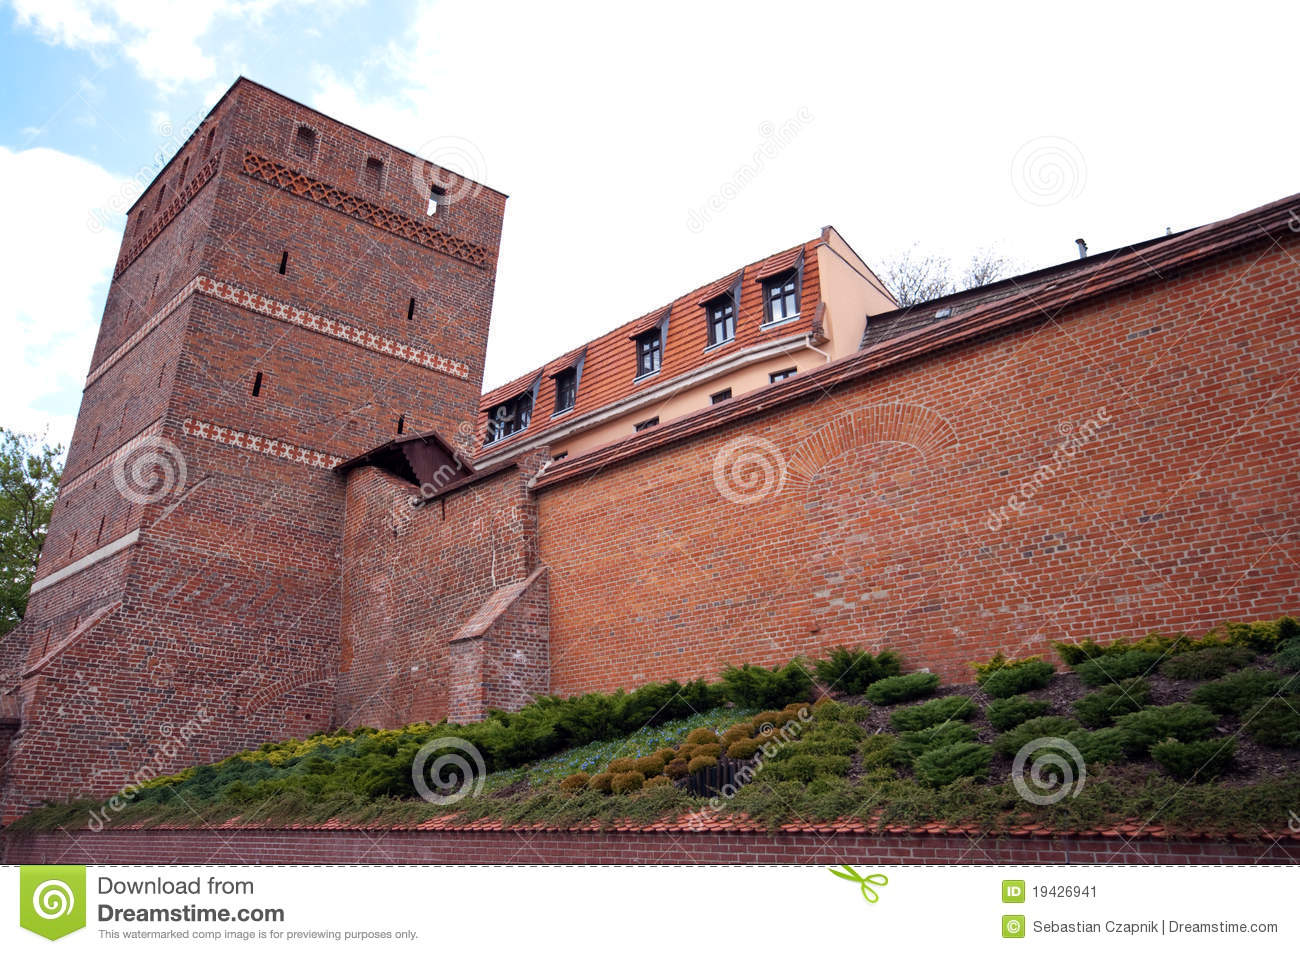 Torun, Poland - the Leaning Tower